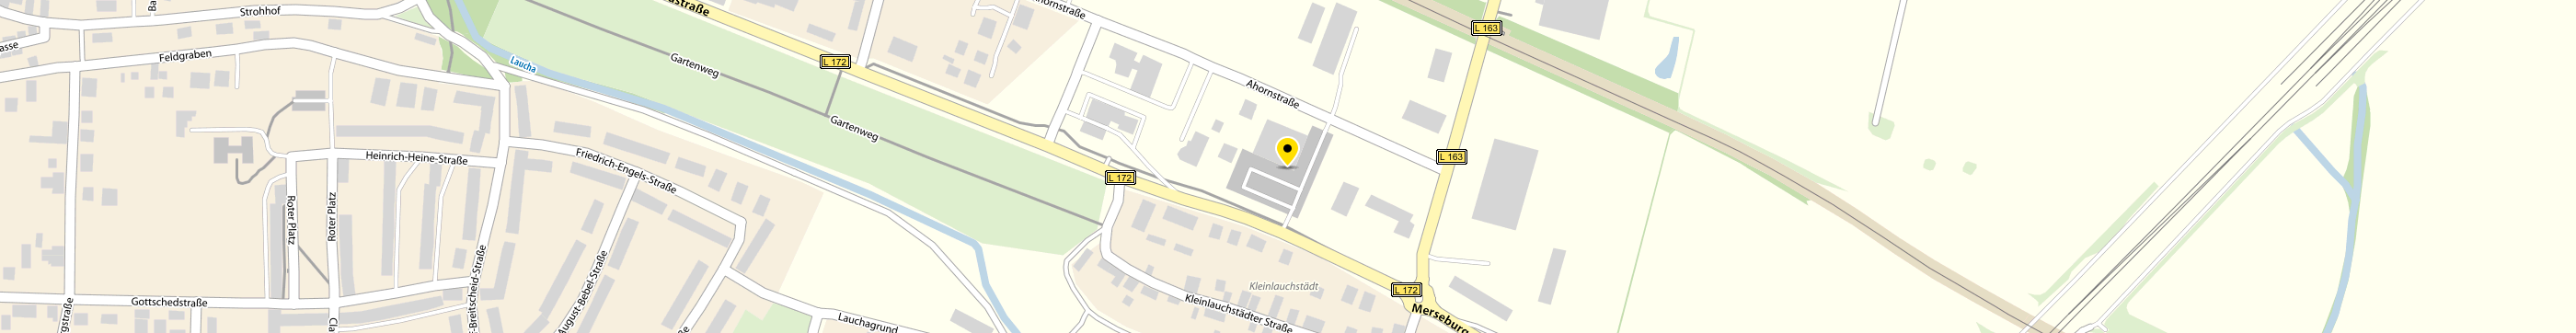 Netto Marken-Discount AG & Co. KG in Bad Lauchstädt, Goethestadt Karte